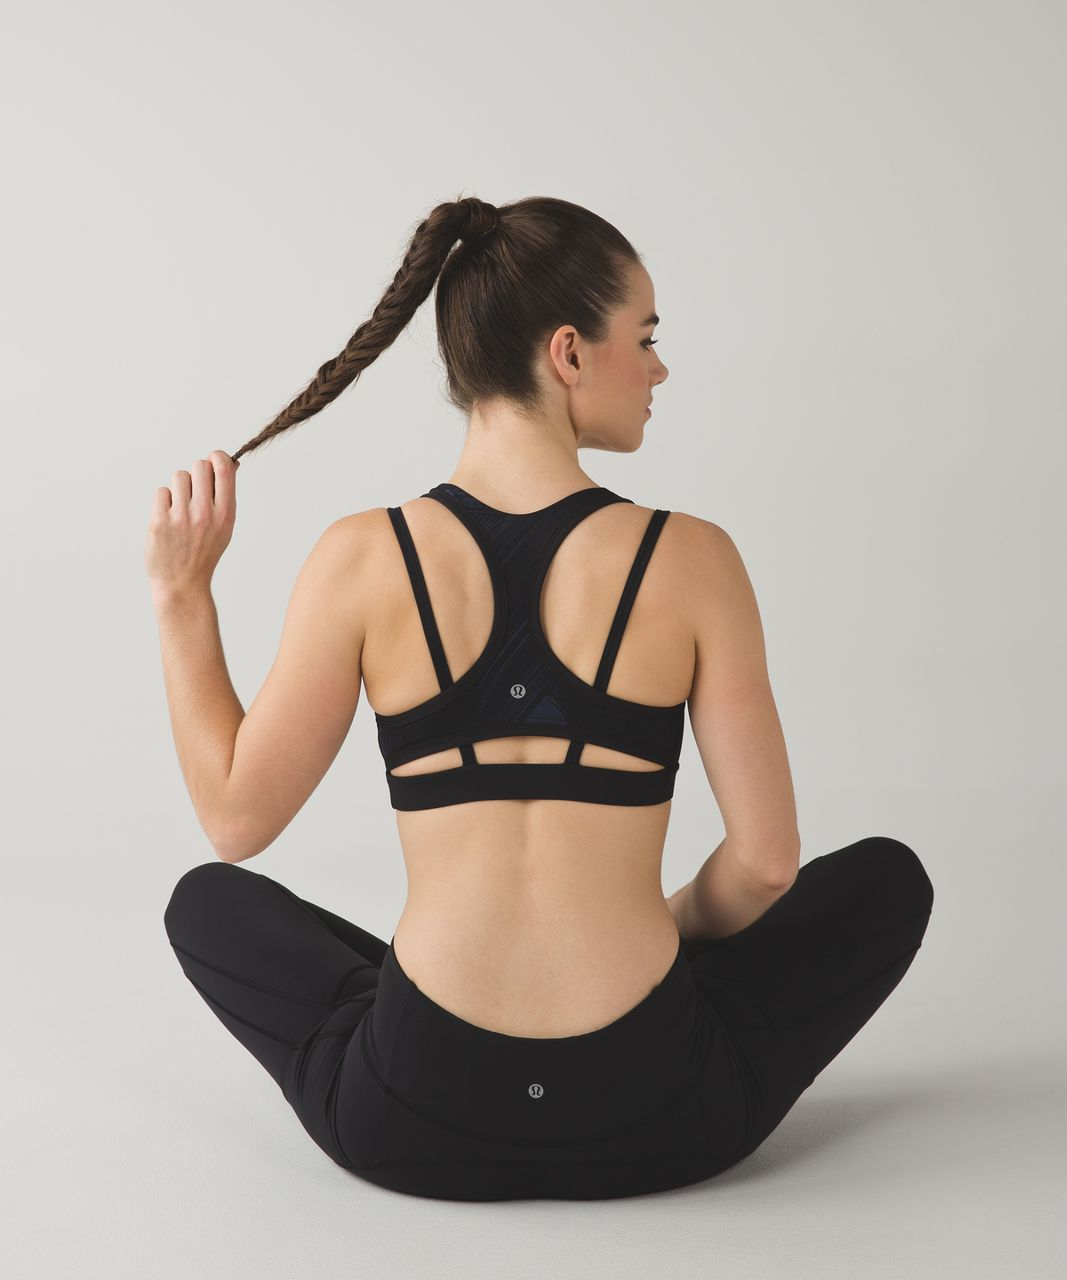 Lululemon Splendour Bra - Wind Chill Deep Navy Black / Black